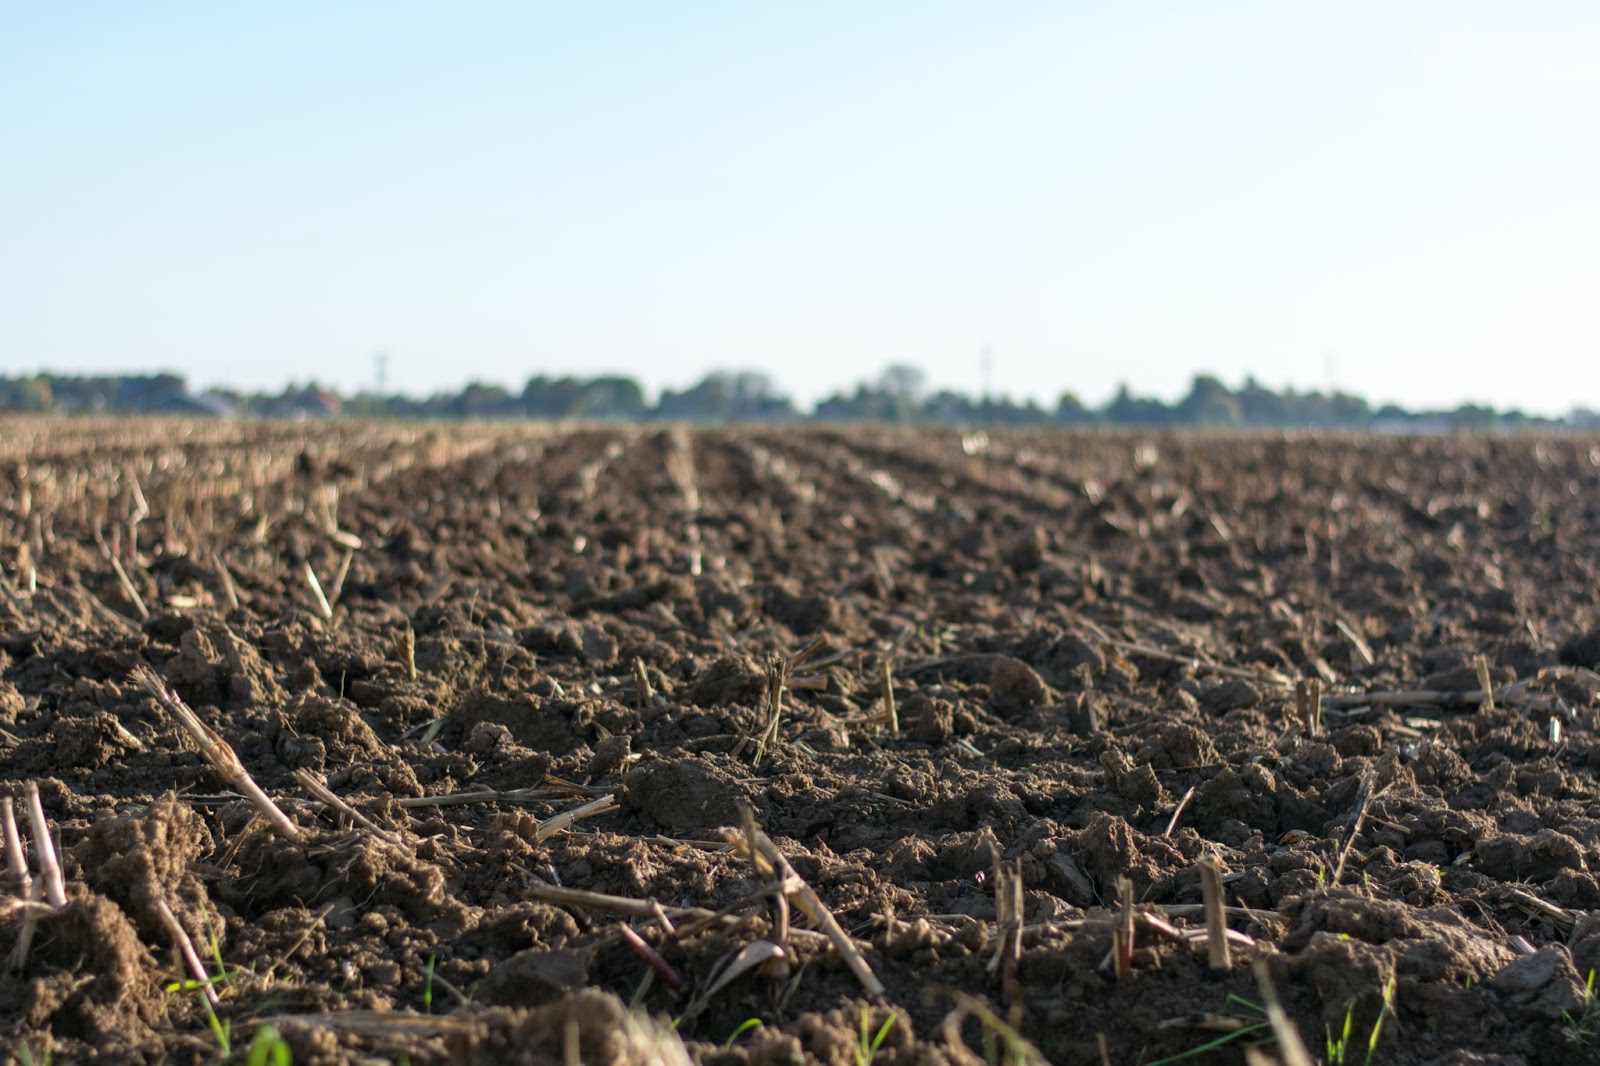 a field of soil without any produce